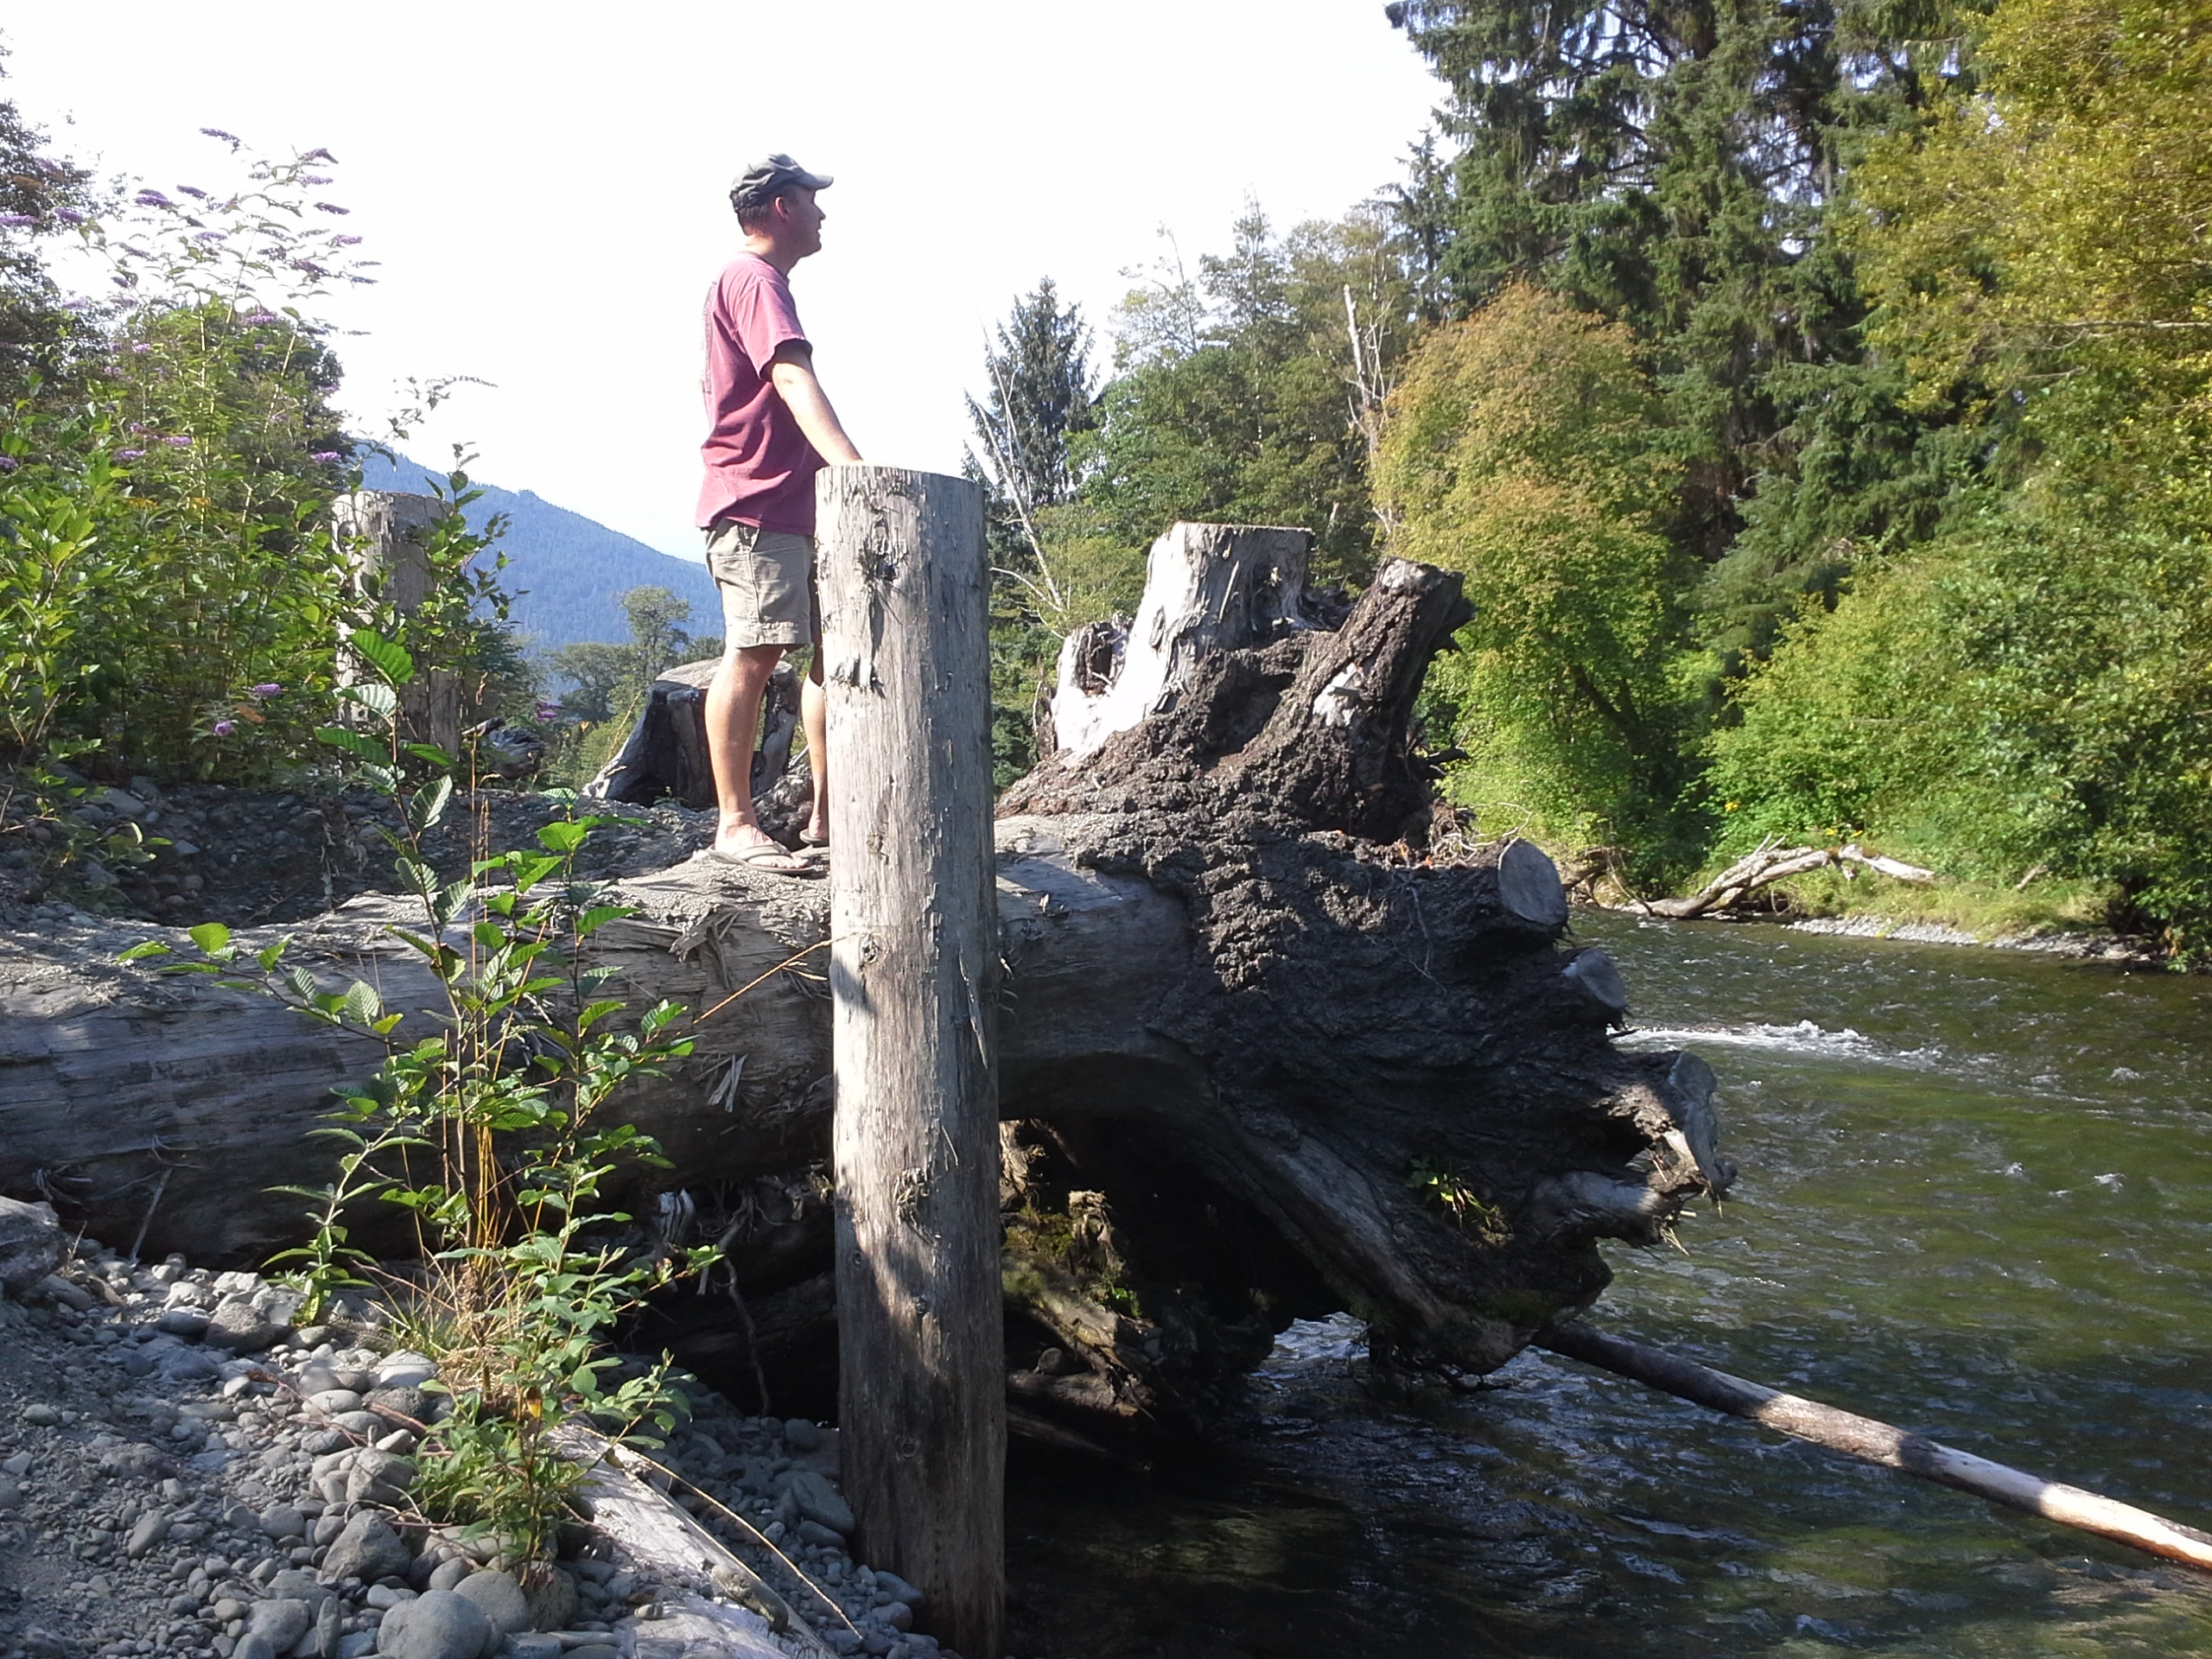 Dave at the Dosewallups River on a peaceful afternoon following a great hike on the Steam Donkey trail.